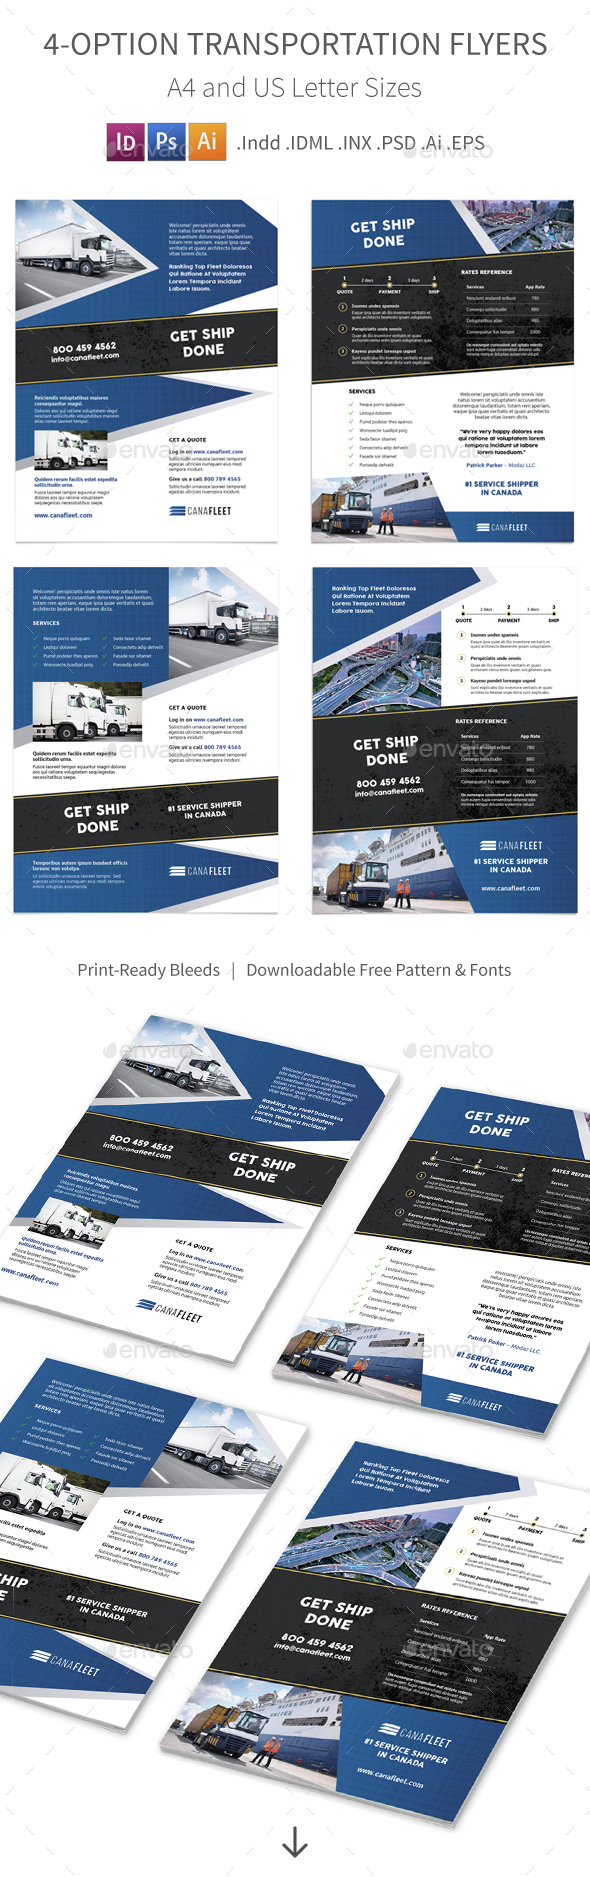 Transportation Company Flyers – 4 Options - Corporate Flyers